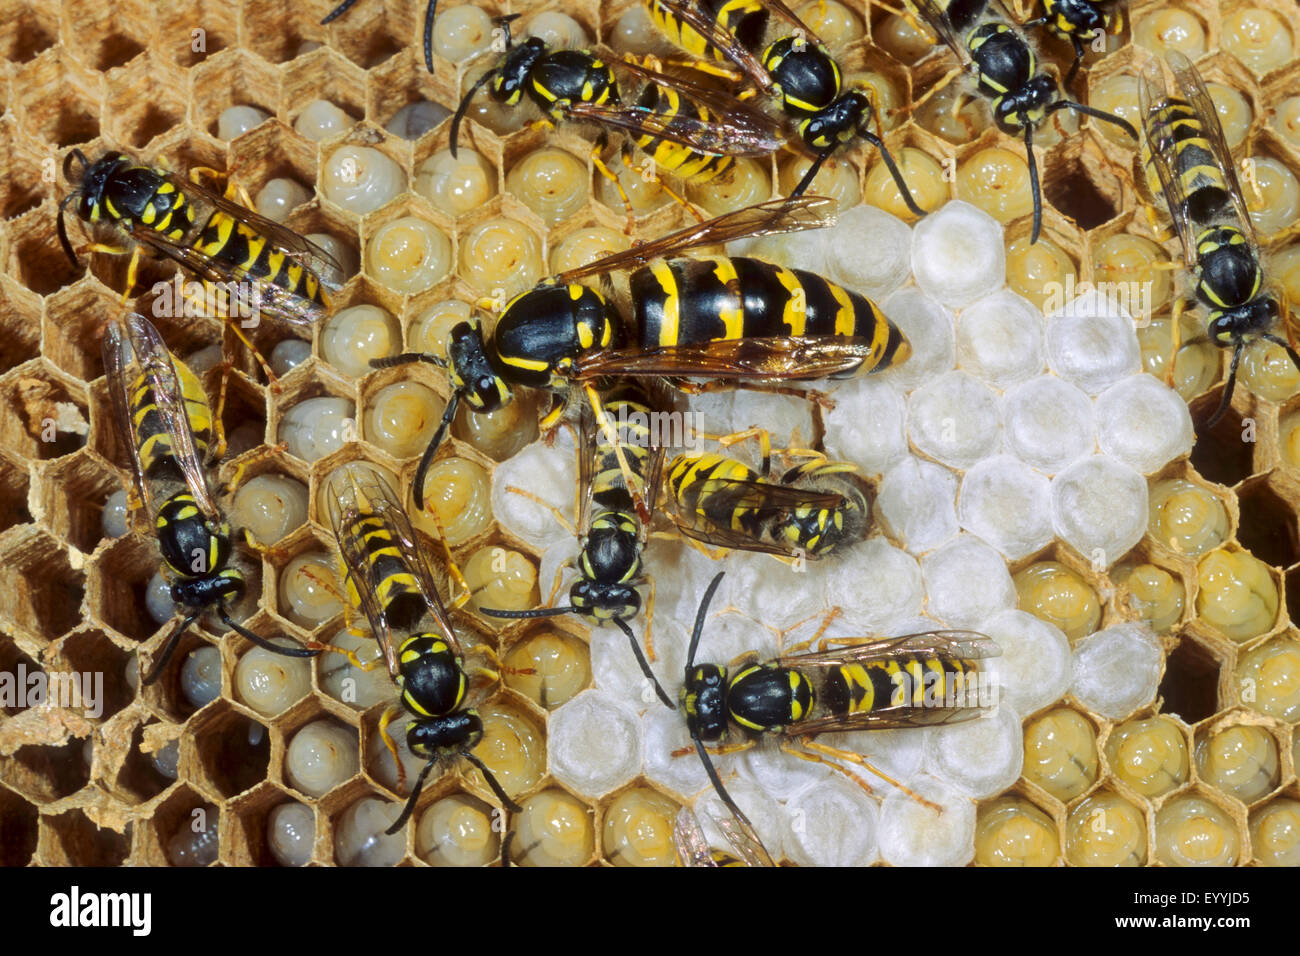 common wasp (Vespula vulgaris, Paravespula vulgaris), queen an dworkers in their nest, Germany Stock Photo